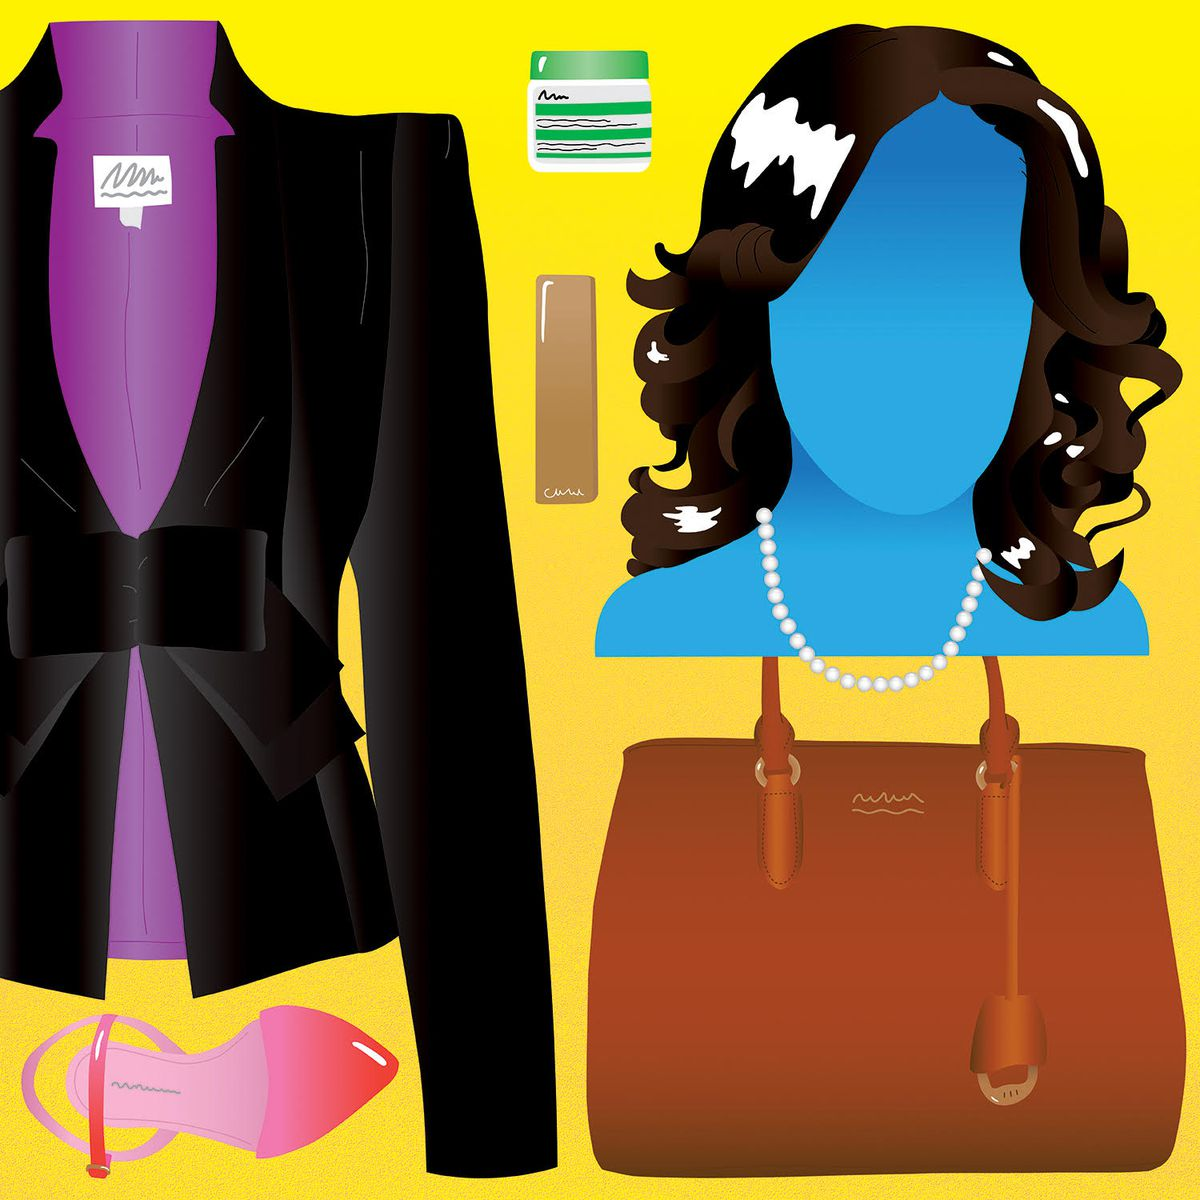 A drawing of a woman's blazer, heels, purse, pearl necklace, and beauty products illustrate the things Black people buy in order to maintain an extra-polished appearance in the workplace.